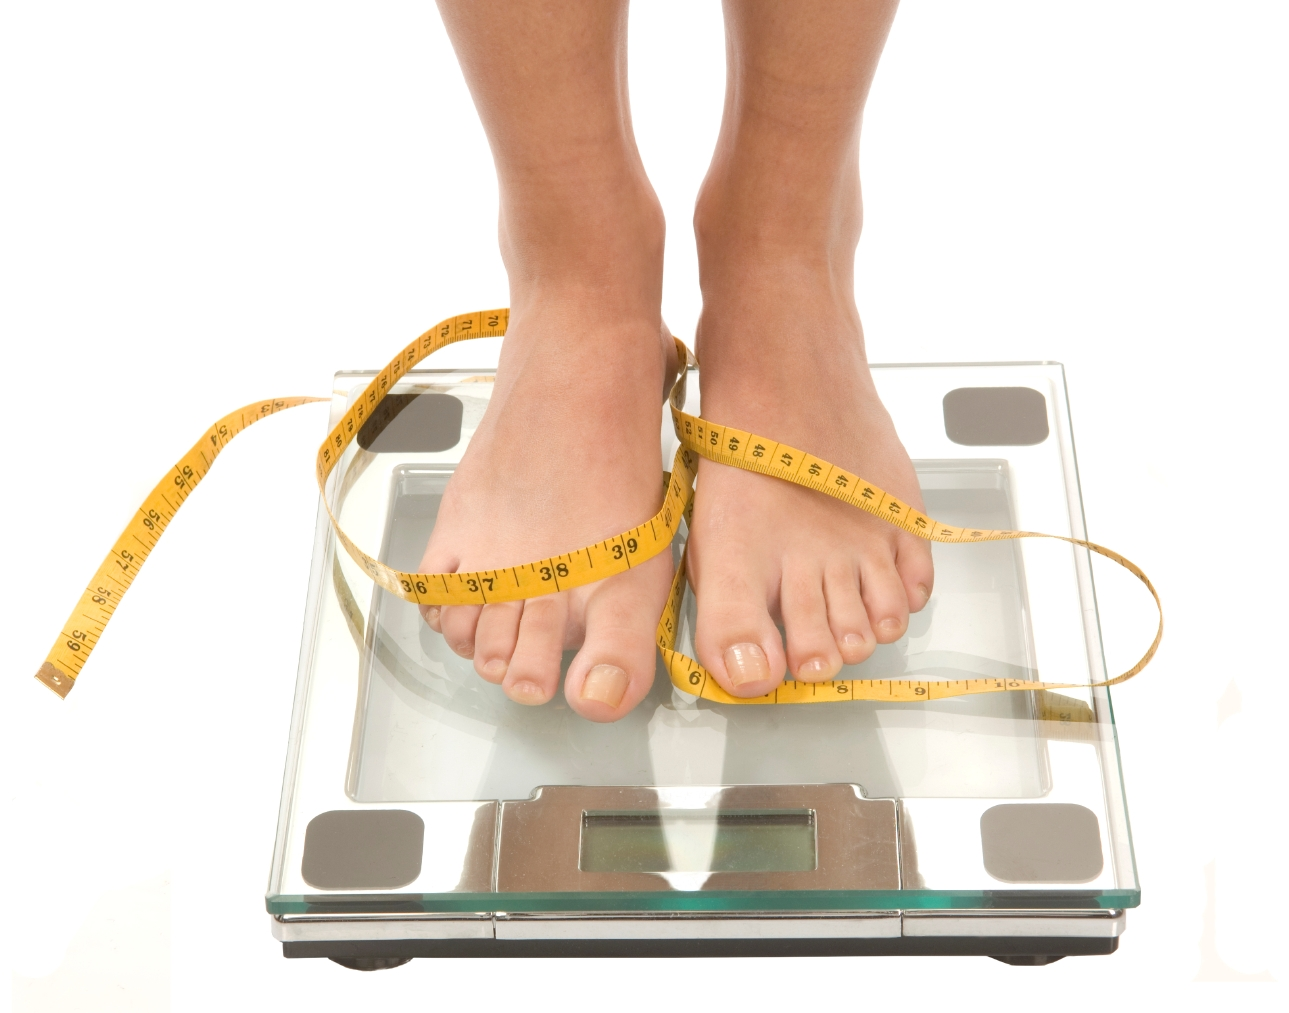 Changing lifestyle and taking on some healthy habits is the best way to lose weight and keep it off.